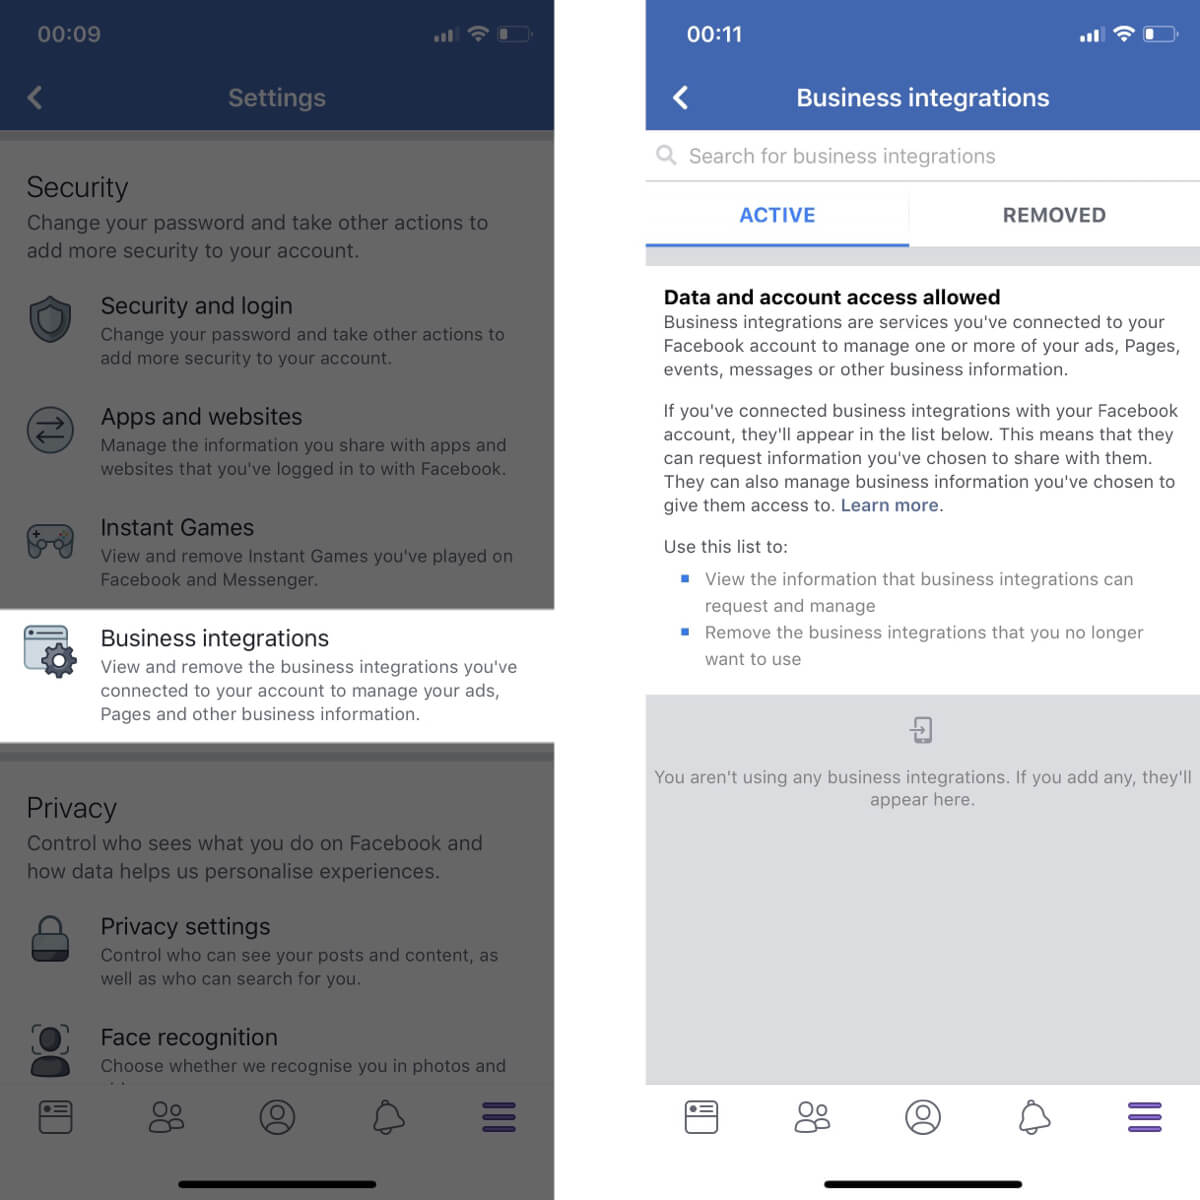 Screenshots showing how to access your business integration settings on Facebook.